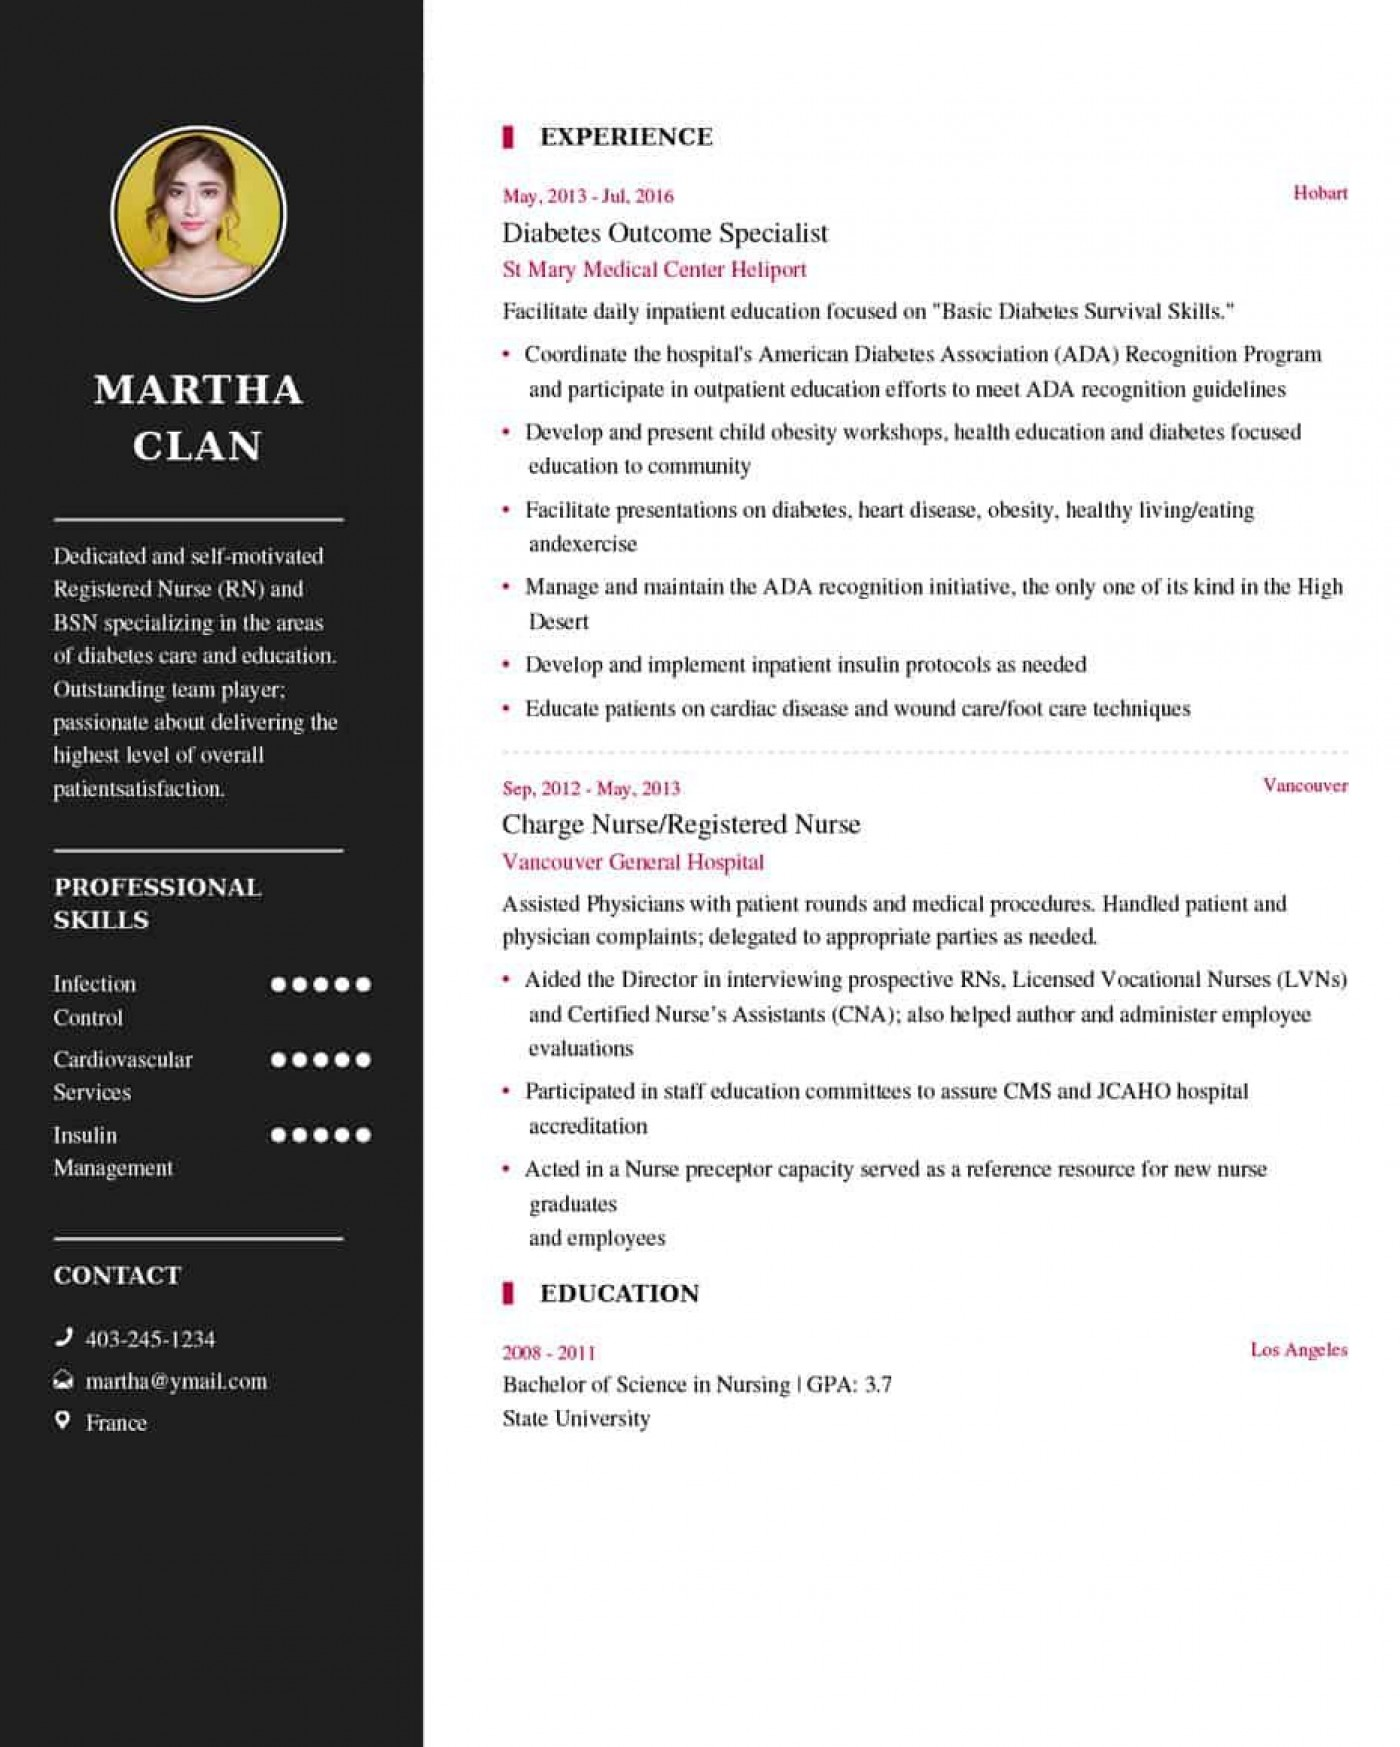 003 Magnificent Resume Template For Nurse Inspiration  Sample Nursing Assistant With No Experience Rn' Free1400